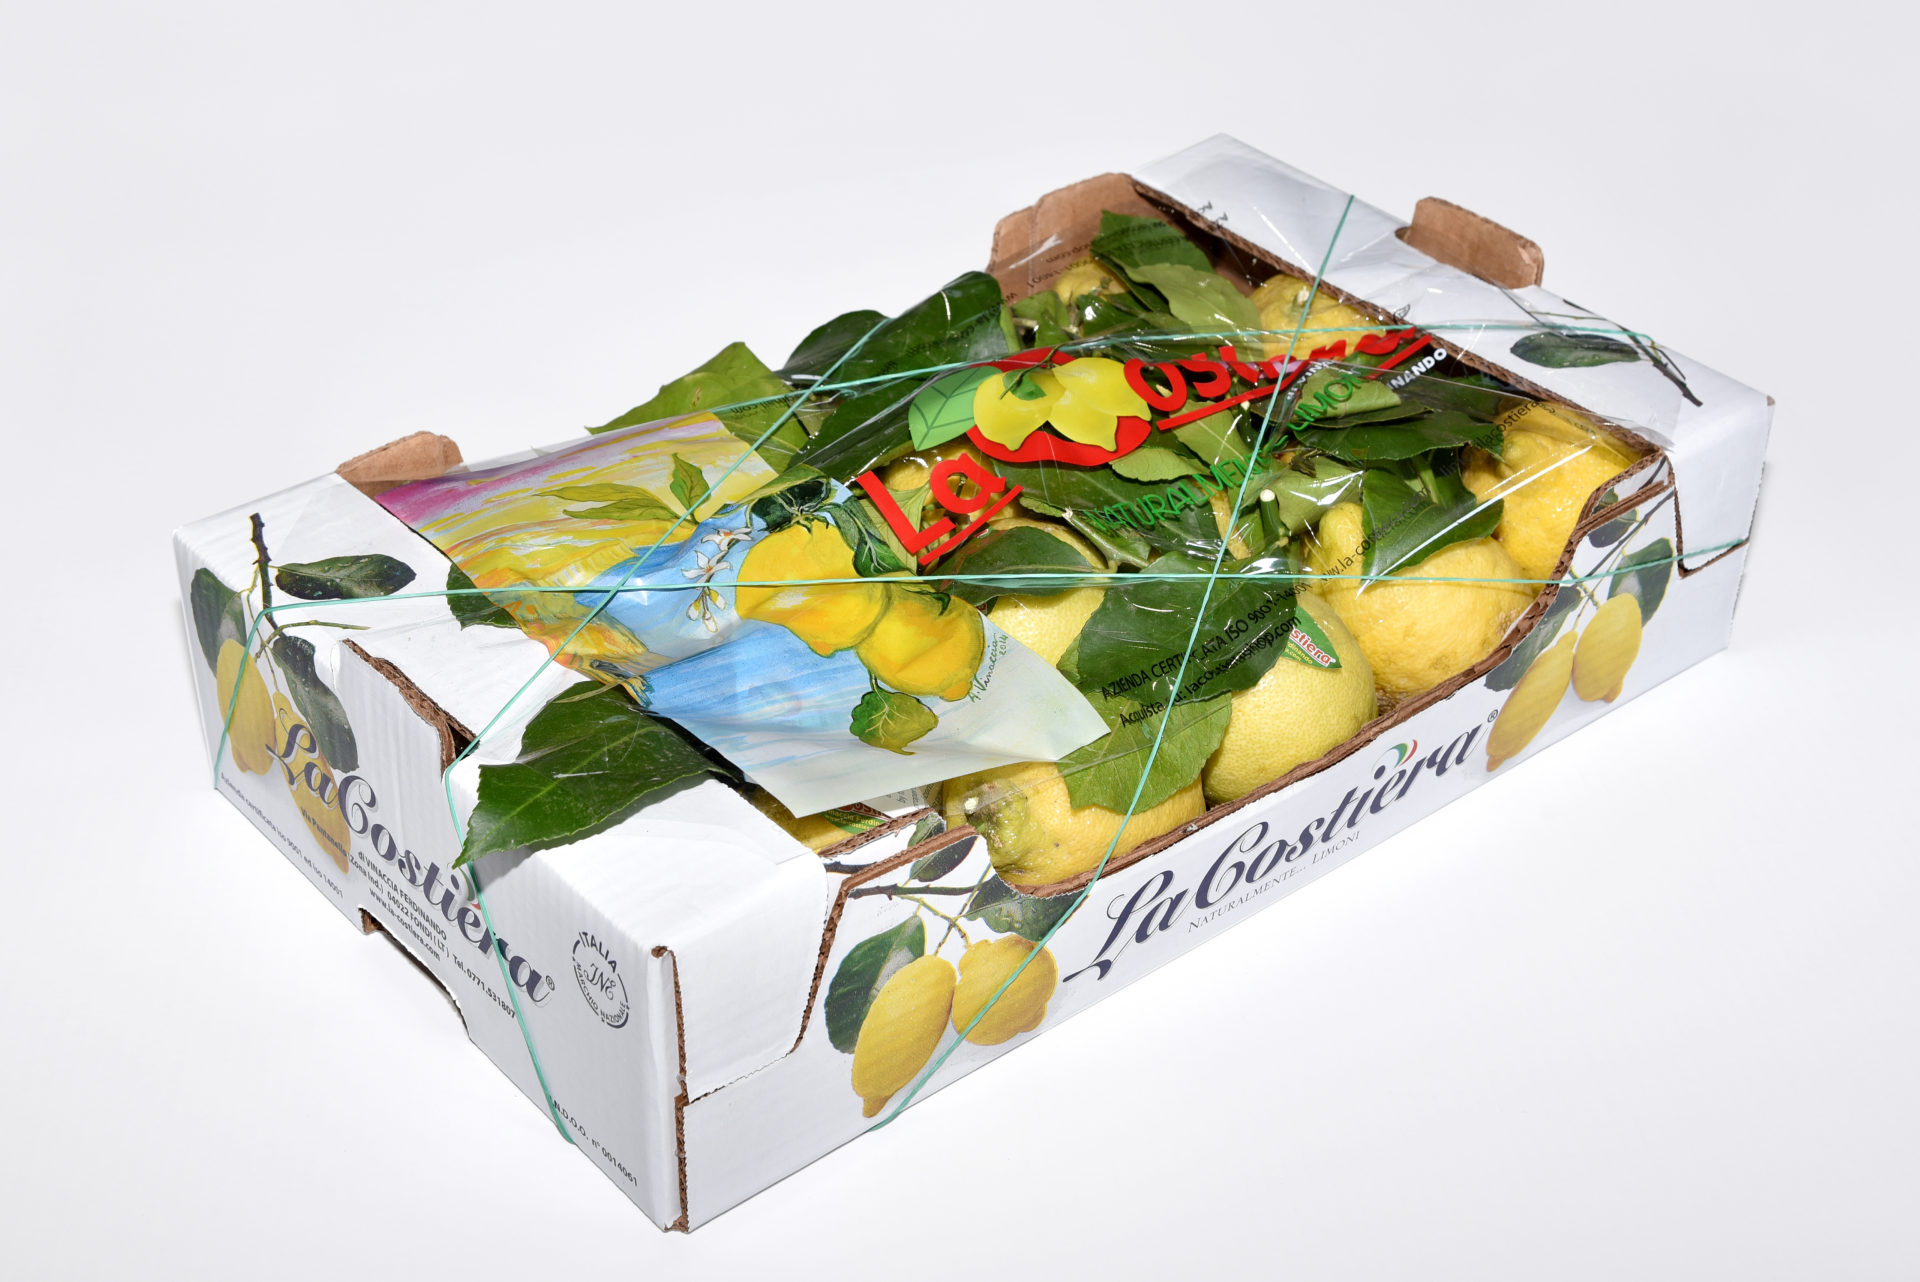 Lemon Primo Fiore with leaf caliber 3 category 1 5,5Kg